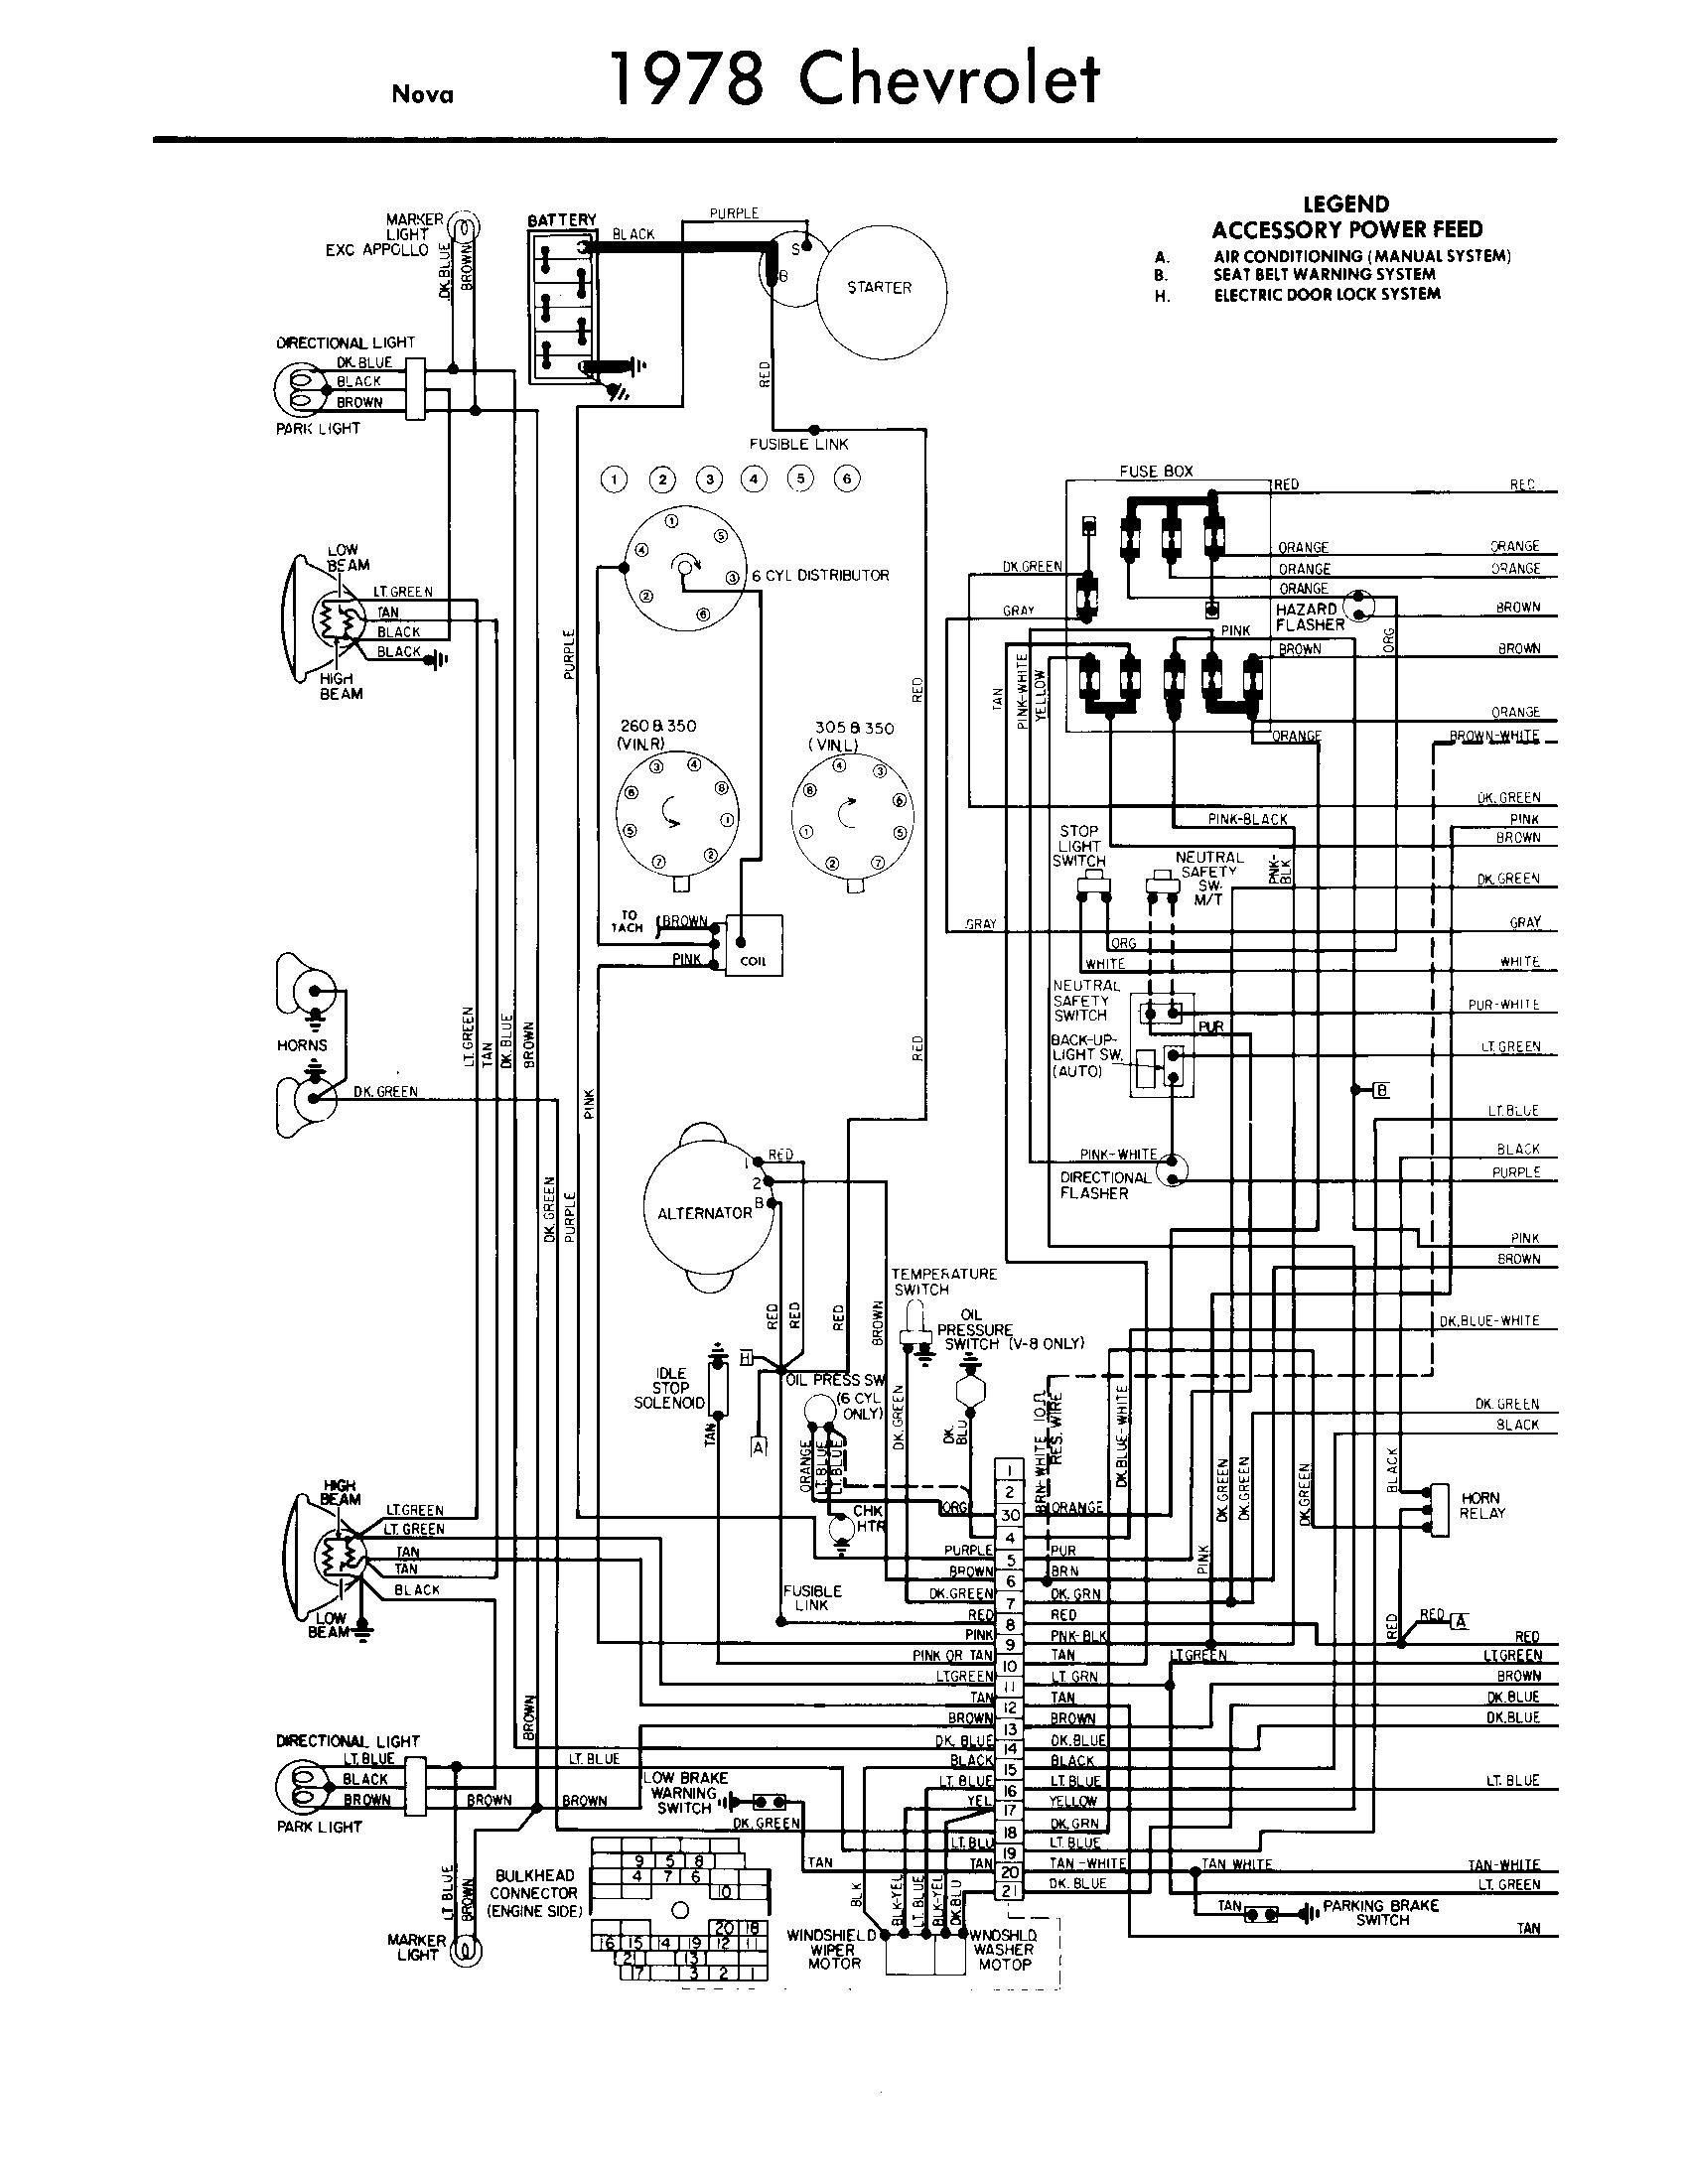 1979 Chevrolet Pickup Electrique Wiring Diagram 78 Chevy Truck Wiring Diagram